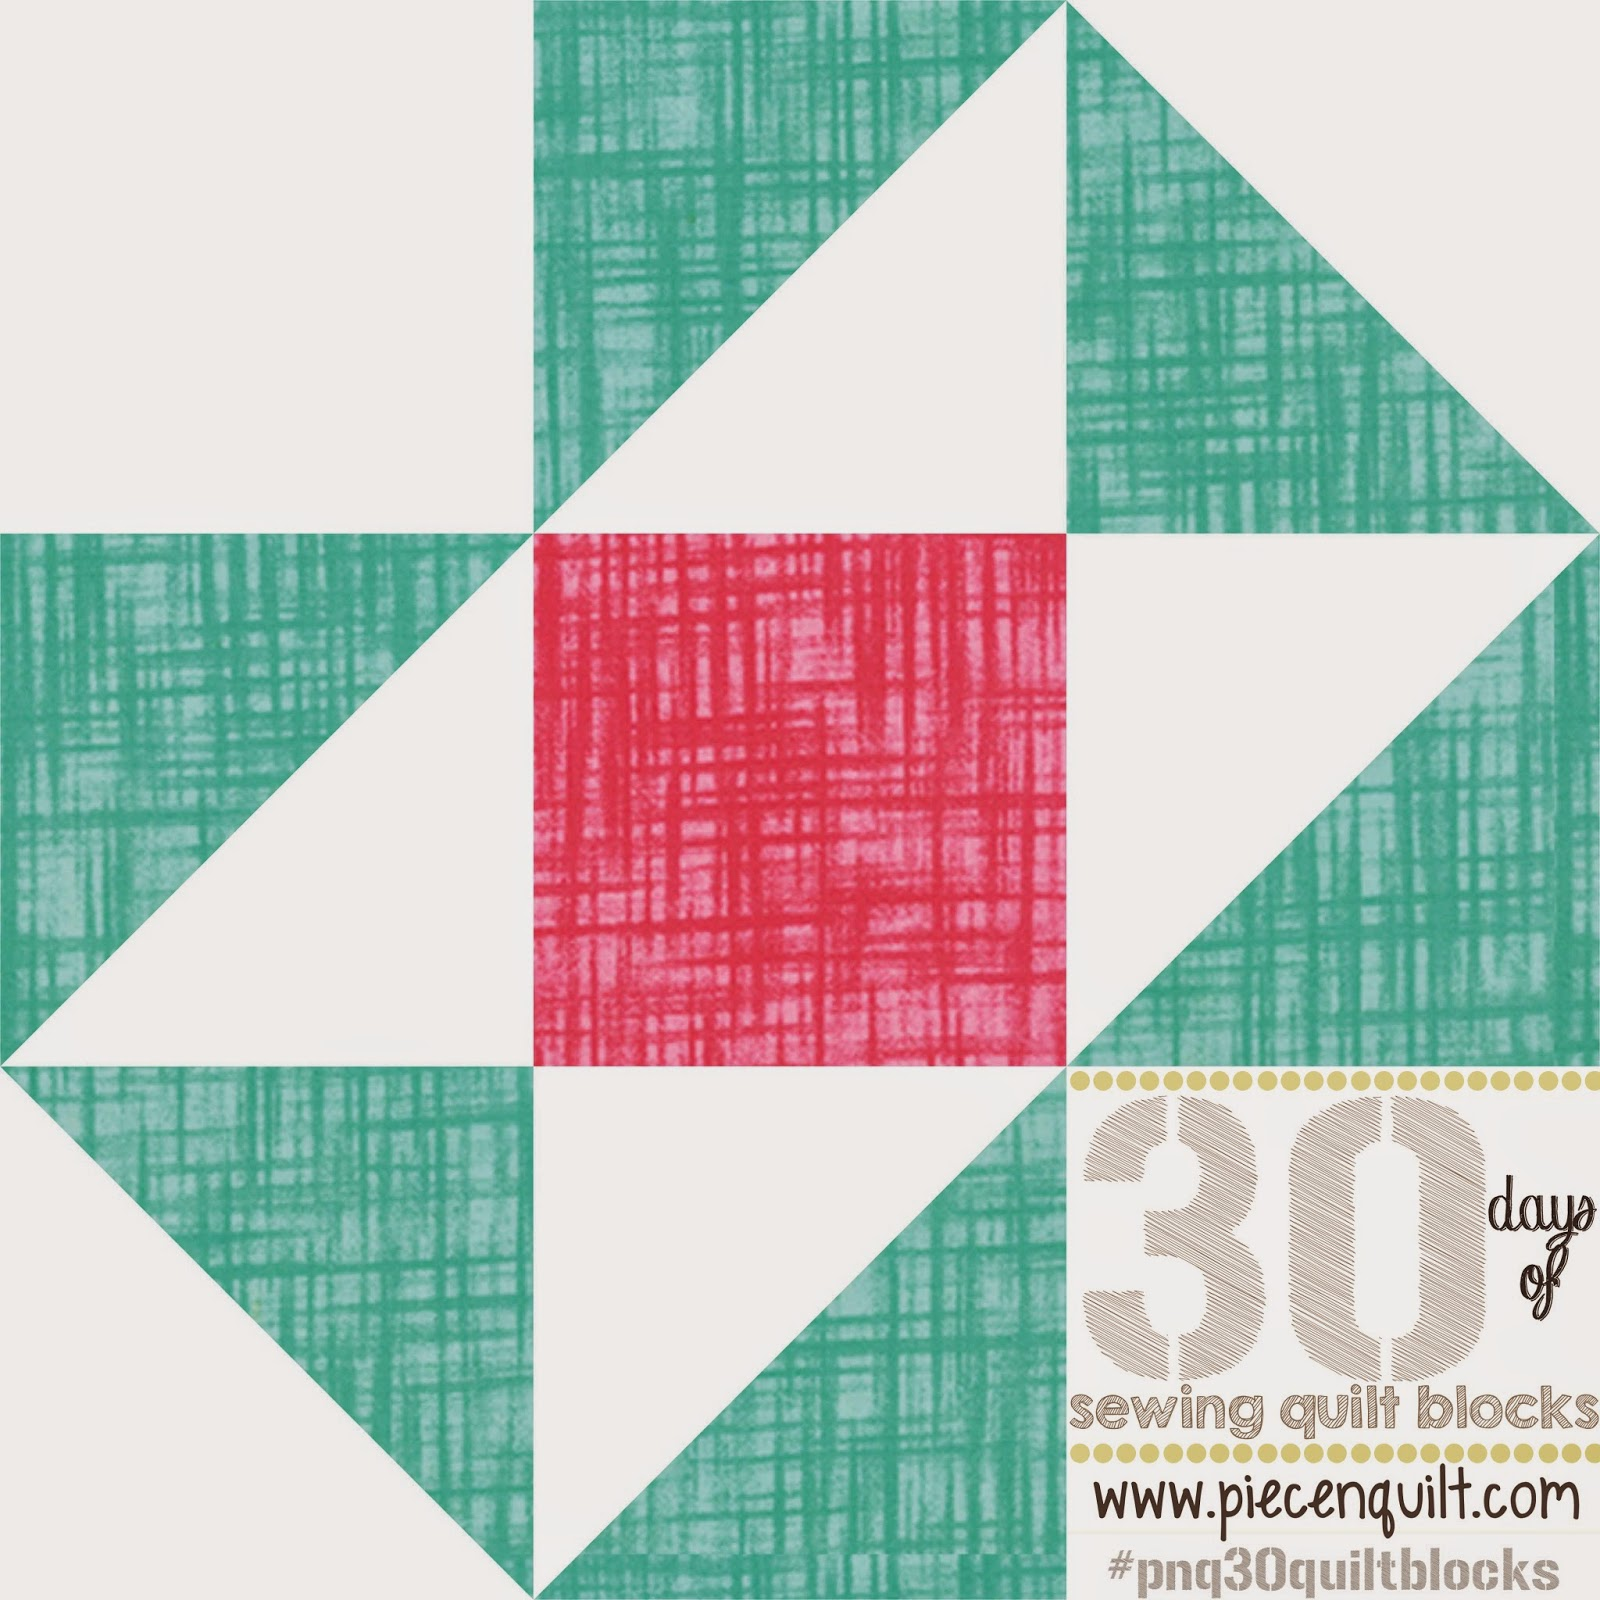 how to split nine patch quilt block 30 days of sewing quilt blocks